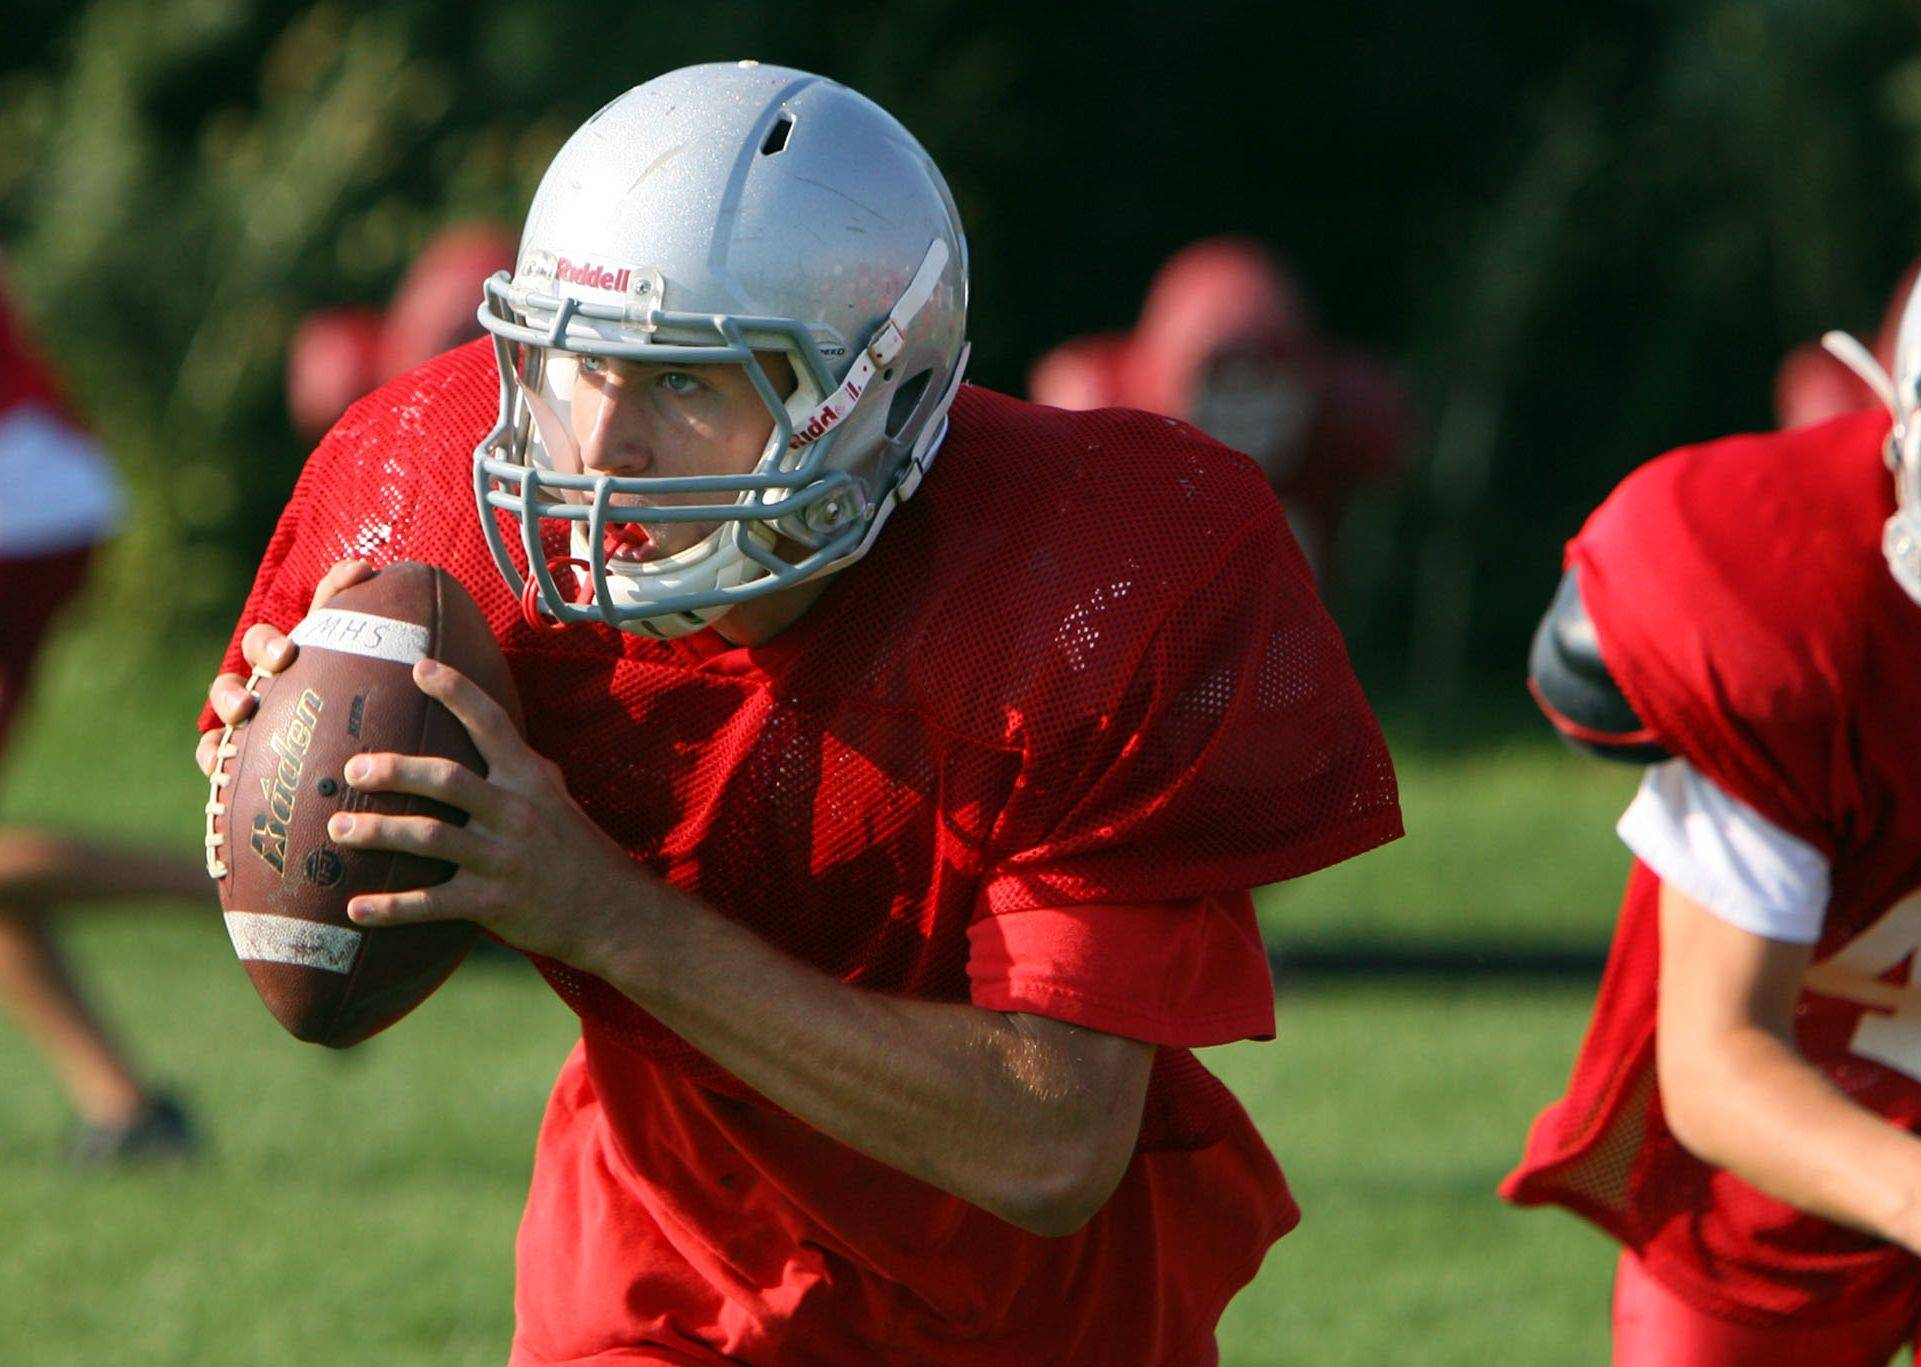 Quarterback Gable Leppert runs the offense during practice at Mundelein High School this week.